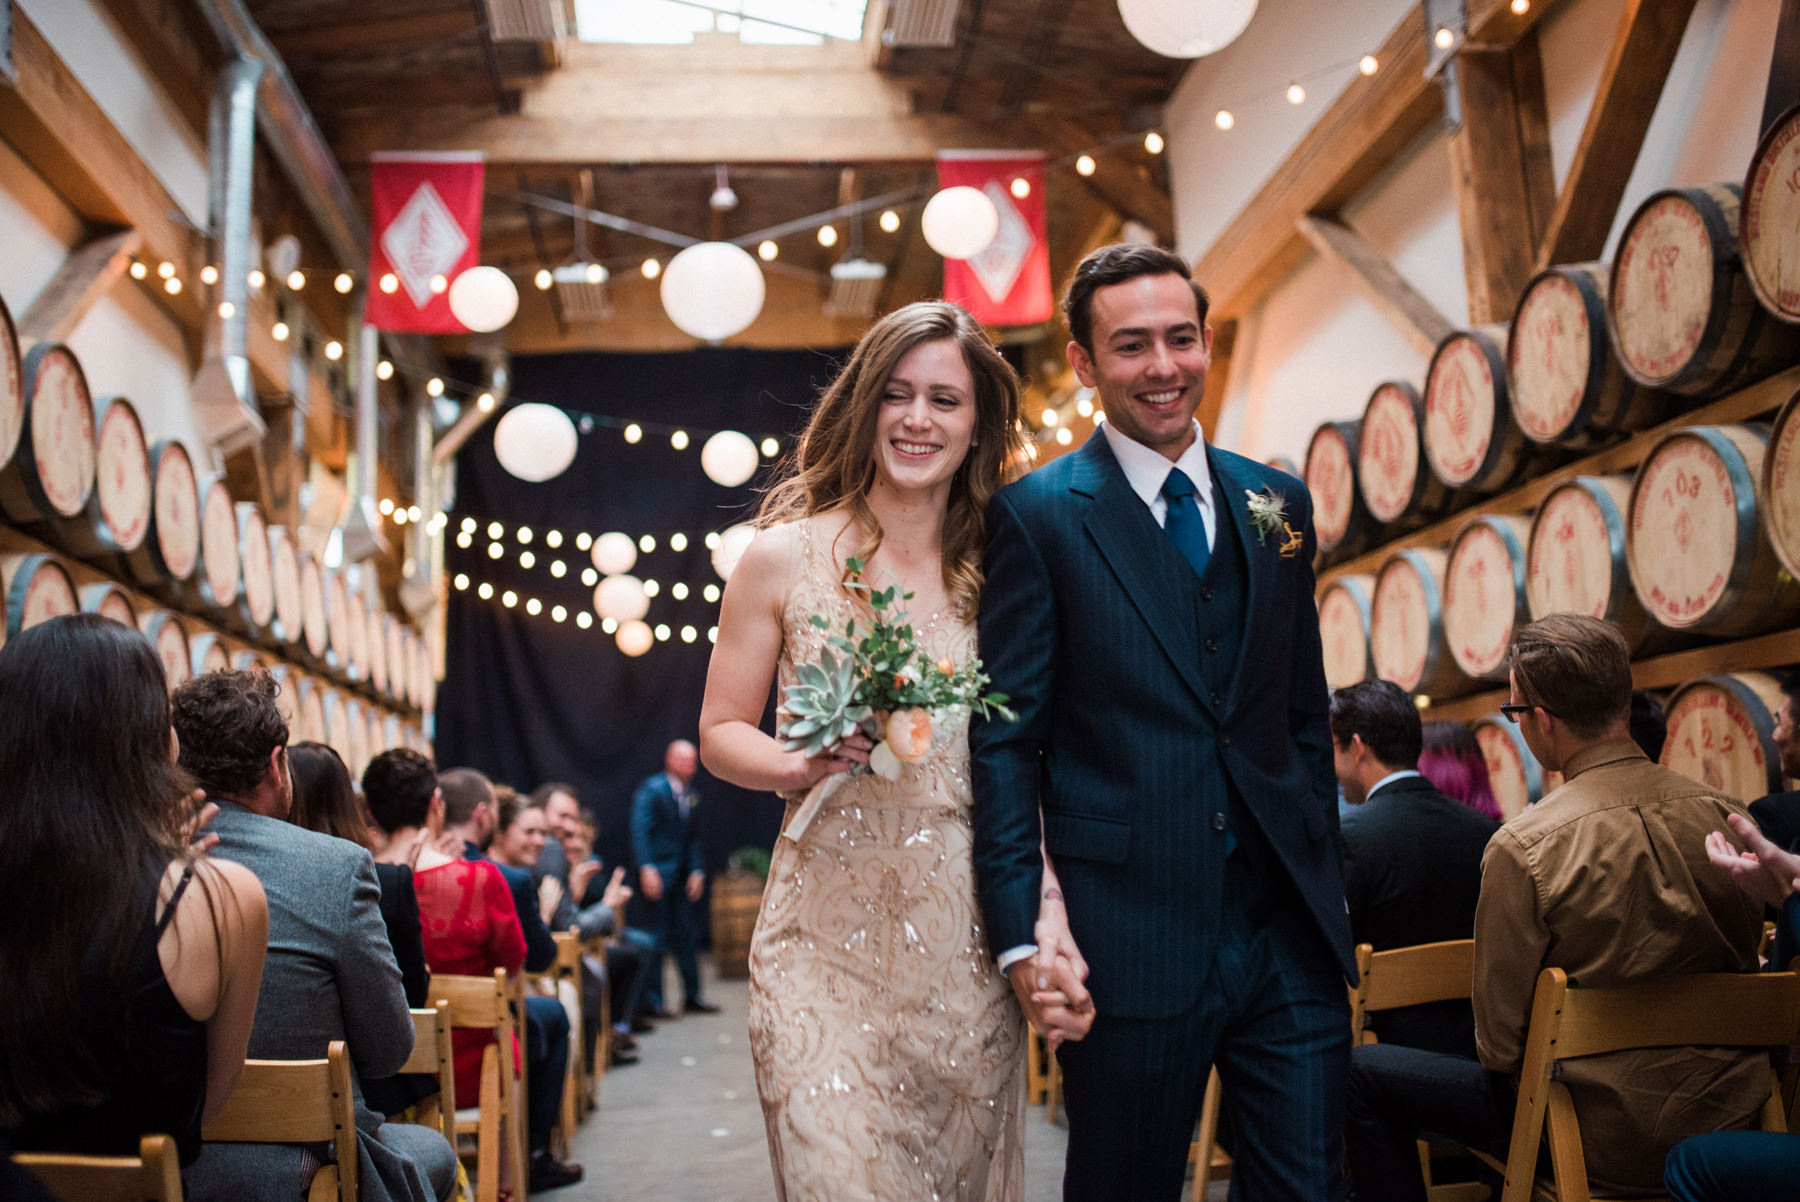 045-wedding-ceremony-among-whiskey-barrels-at-westland-distillery-in-seattle.jpg